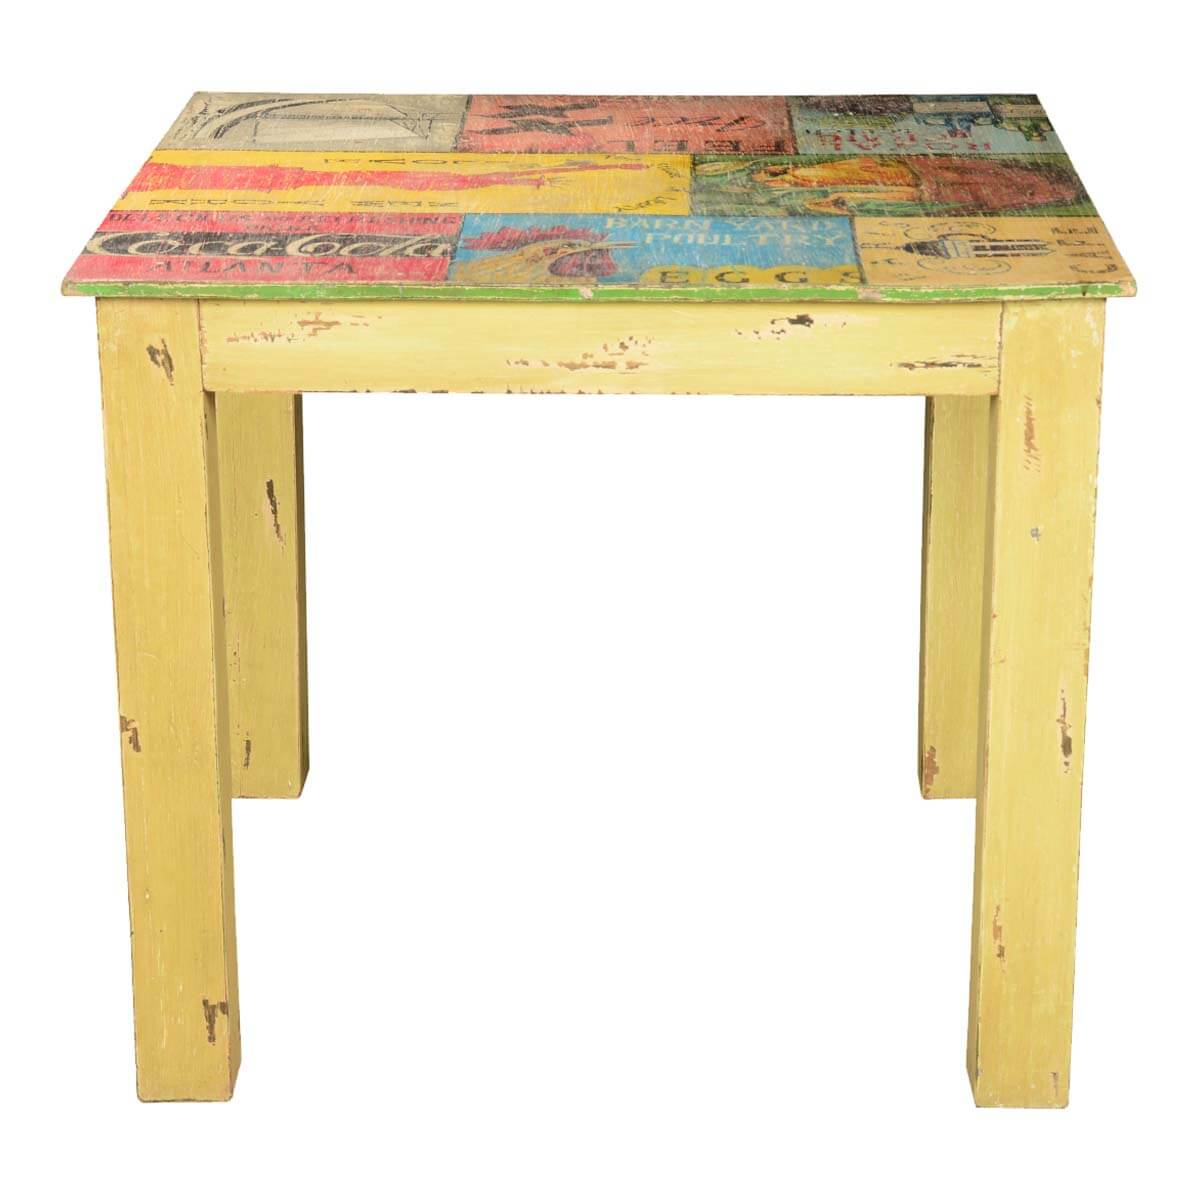 Pop Art Labels Mango Wood Yellow 35quot Square Dining Table : 69381 from www.sierralivingconcepts.com size 1200 x 1200 jpeg 102kB